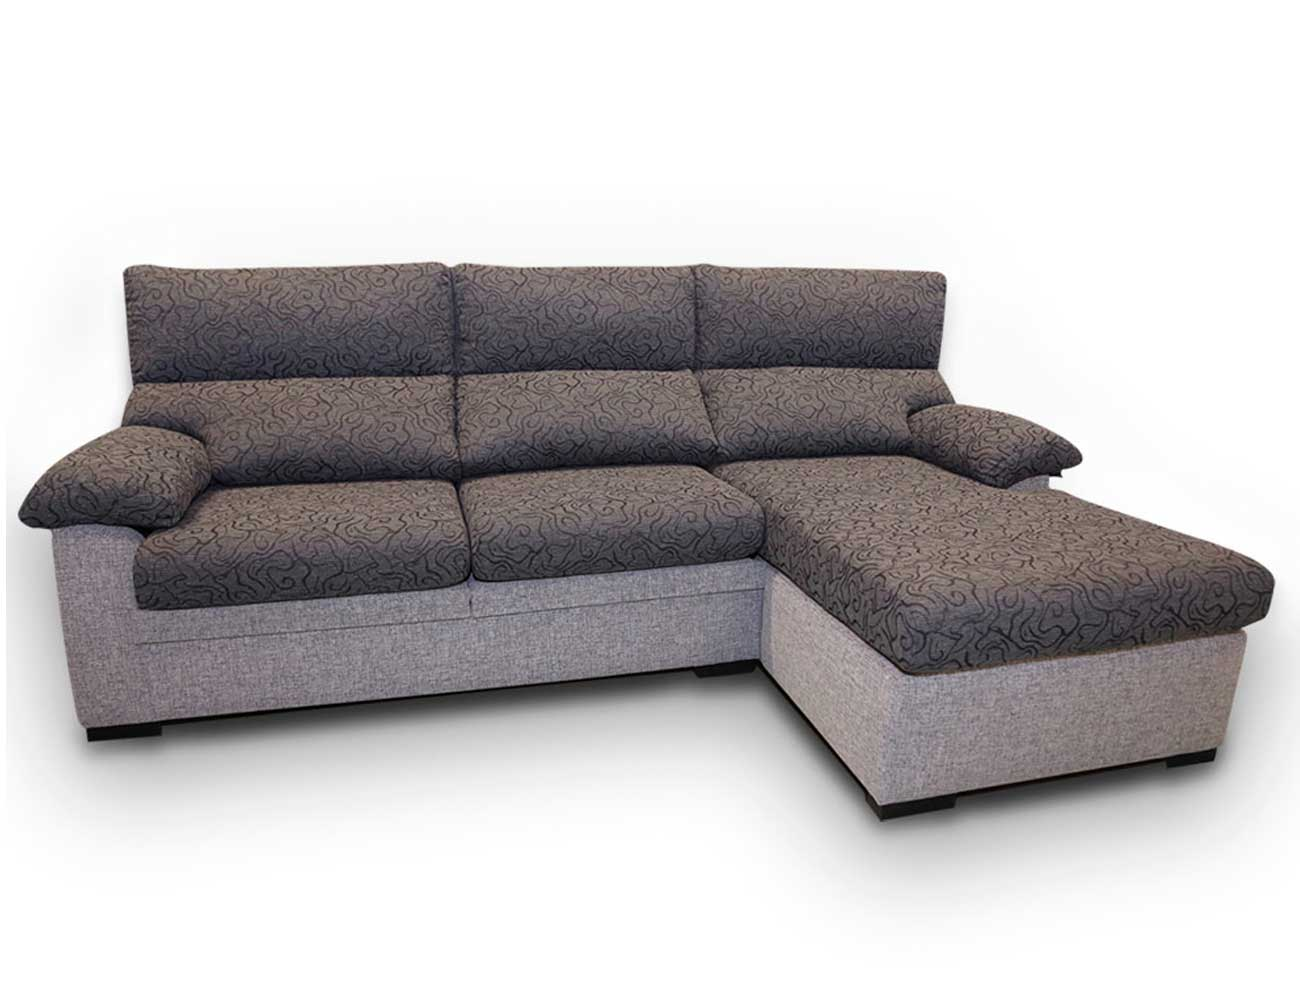 4900_sofa chaiselongue asientos extraibles gris marengo3